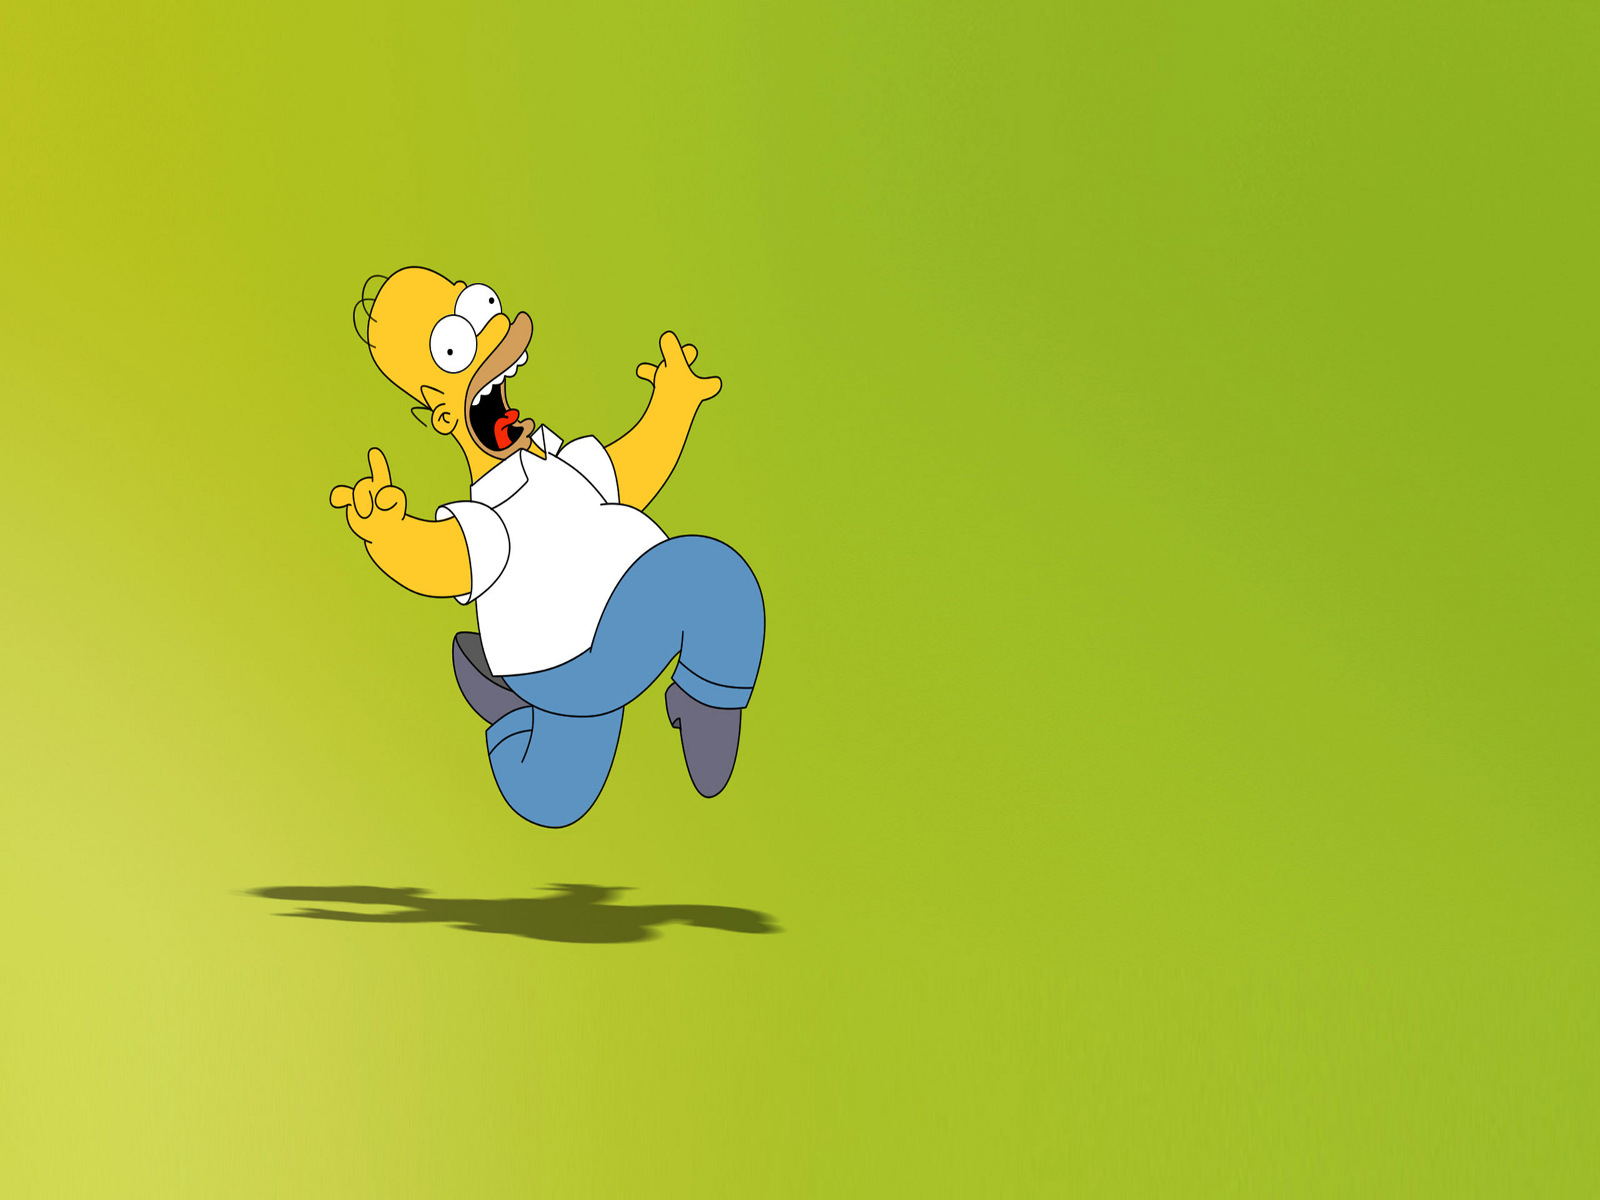 Crazy homer simpson